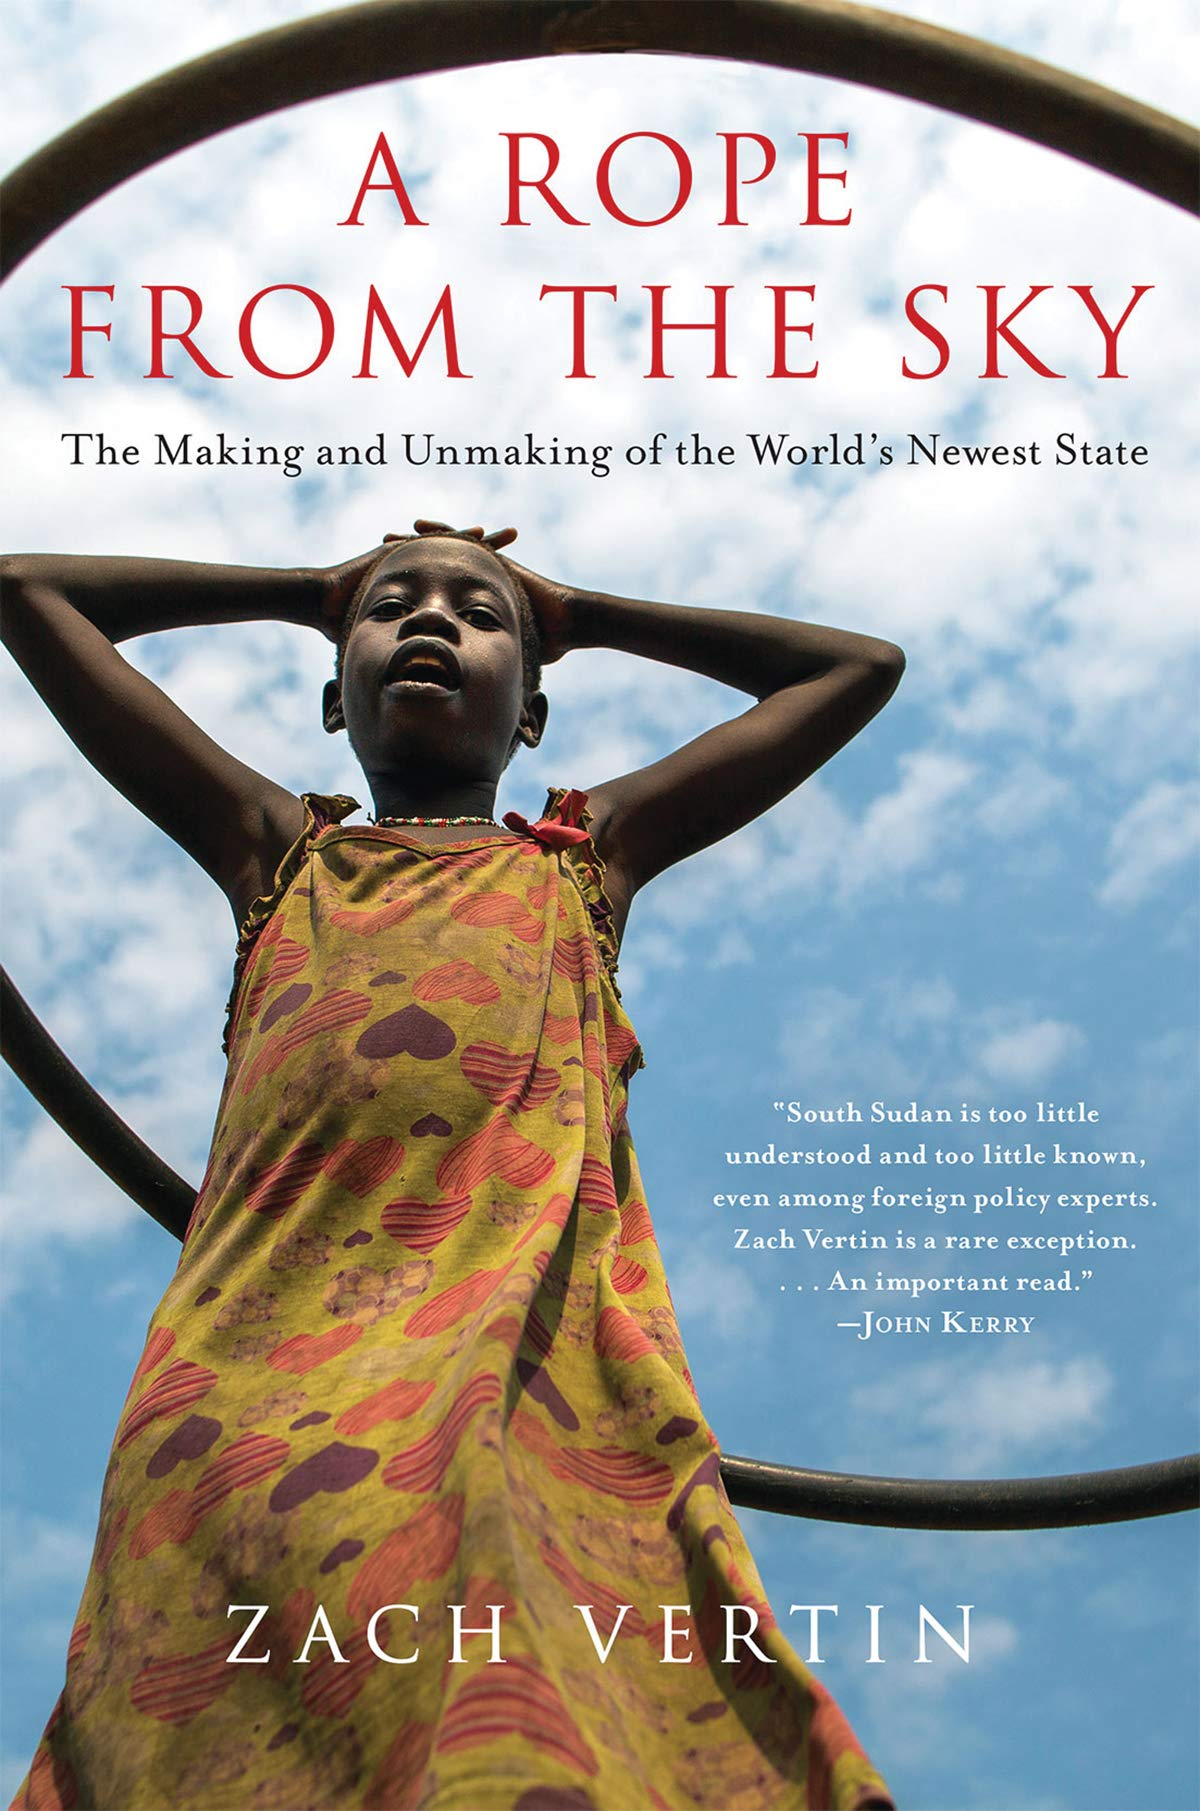 A Rope from the Sky: The Making and Unmaking of the